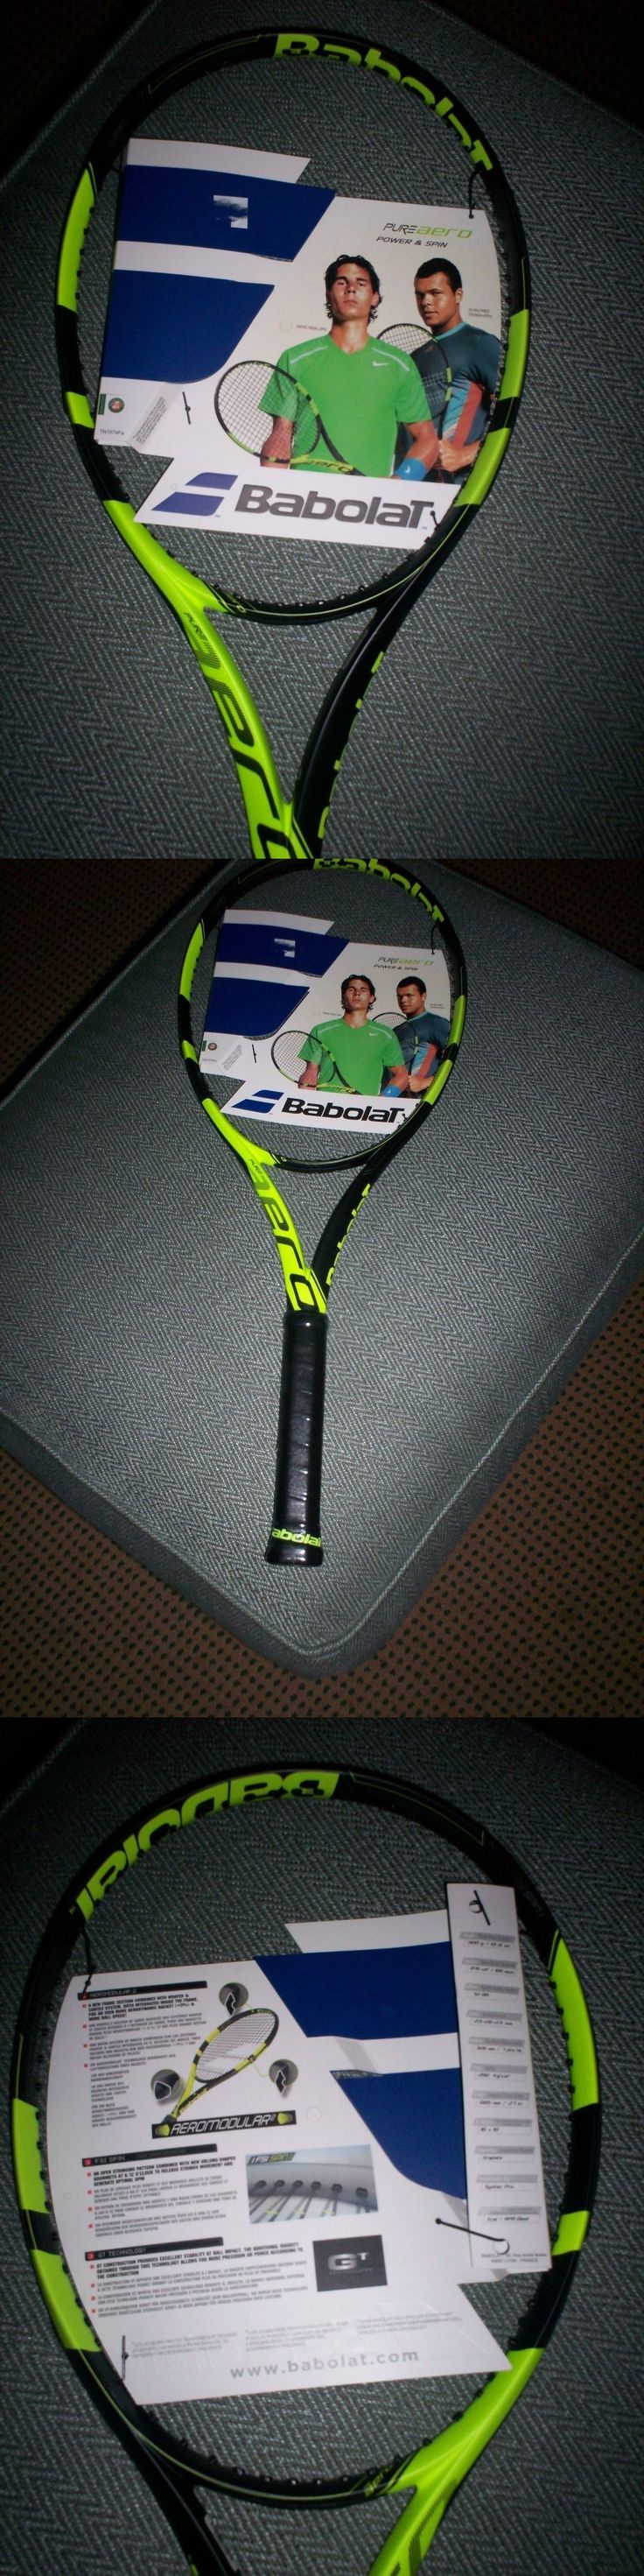 Racquets 20871: Babolat Pure Aero Unstrung Tennis Racquet Nwt- 4 3 8 -> BUY IT NOW ONLY: $159.99 on eBay!